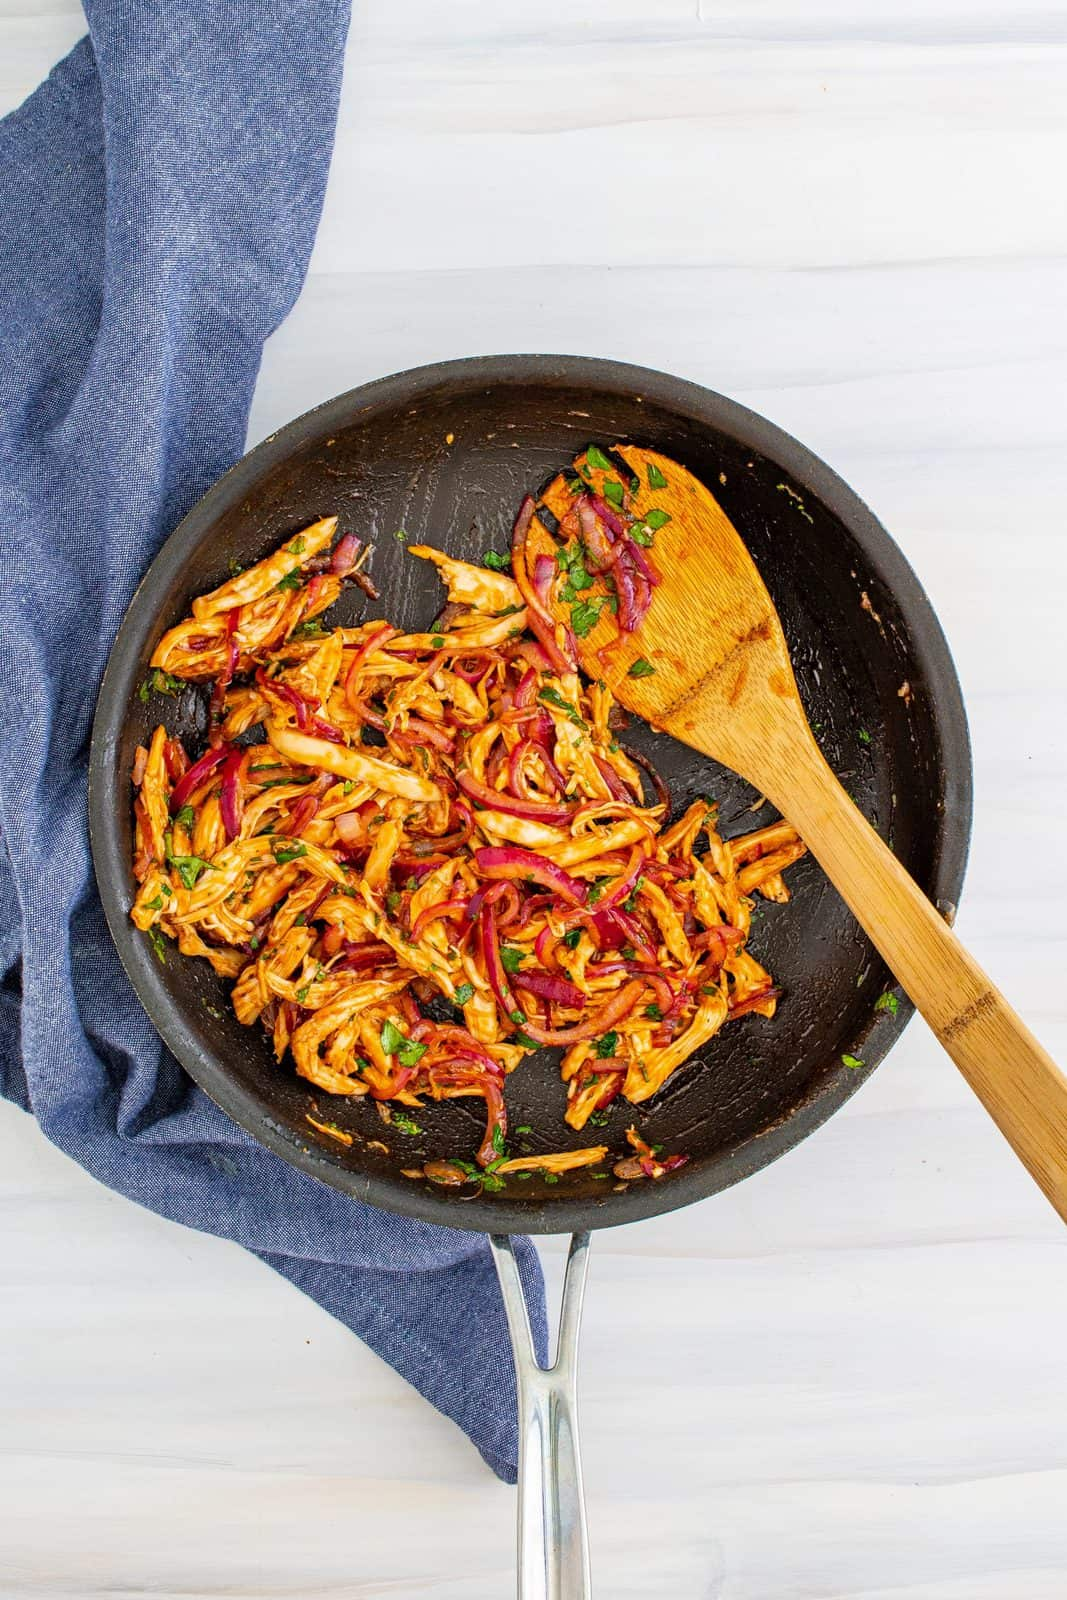 Chicken and bbq mix all stirred together in a skillet.